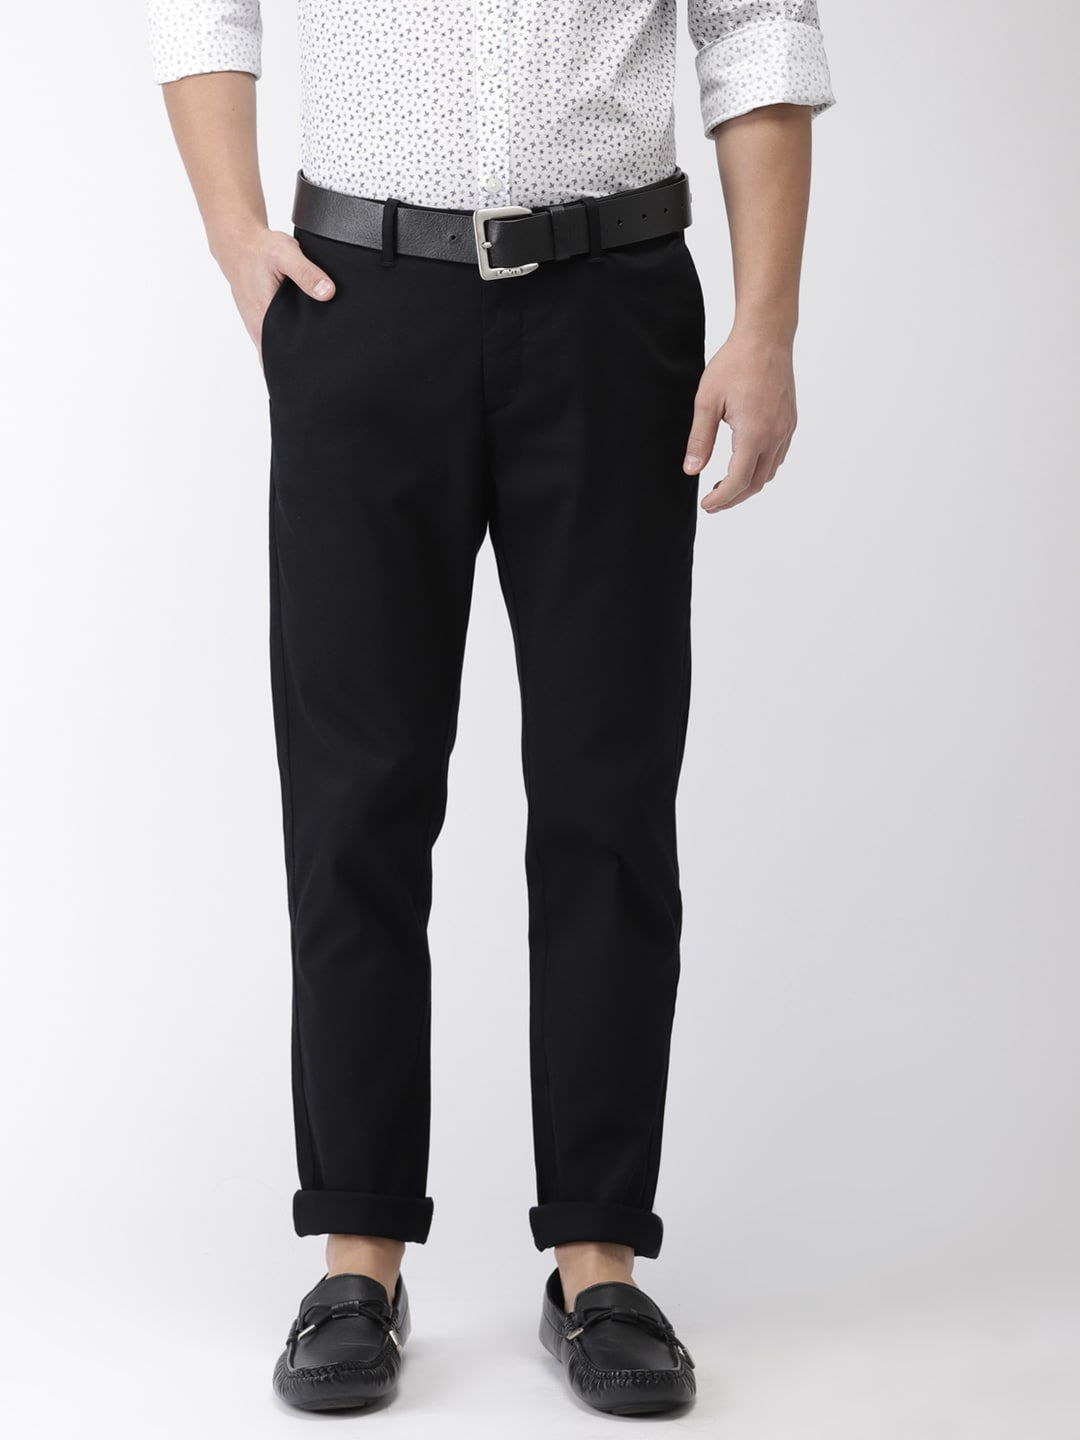 ce66eb8ee0d Men Casual Trousers - Buy Casual Pants for Men in India - Myntra